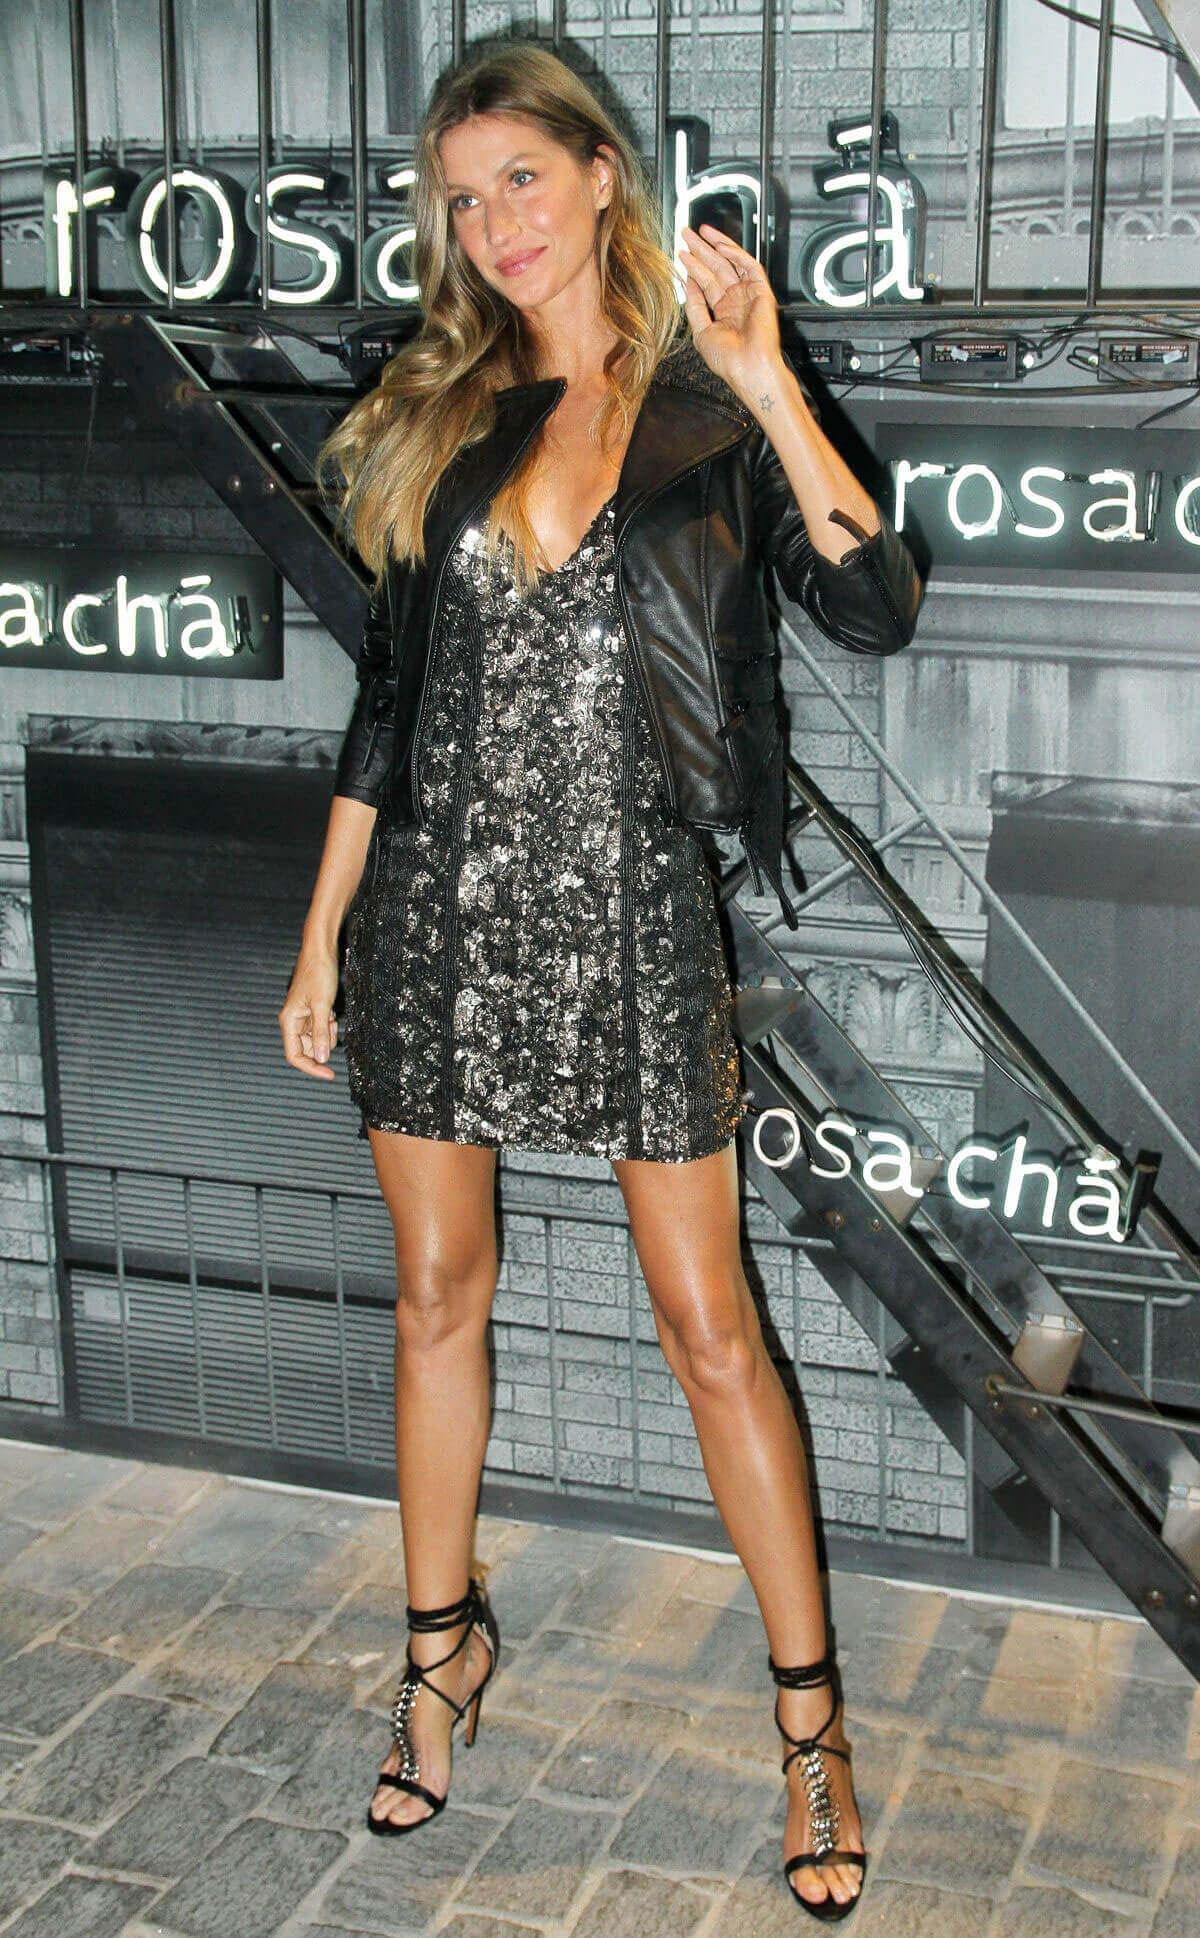 Gisele Bundchen Stills at Rosa Cha Summer Collection Lauch Event in Sao Paulo